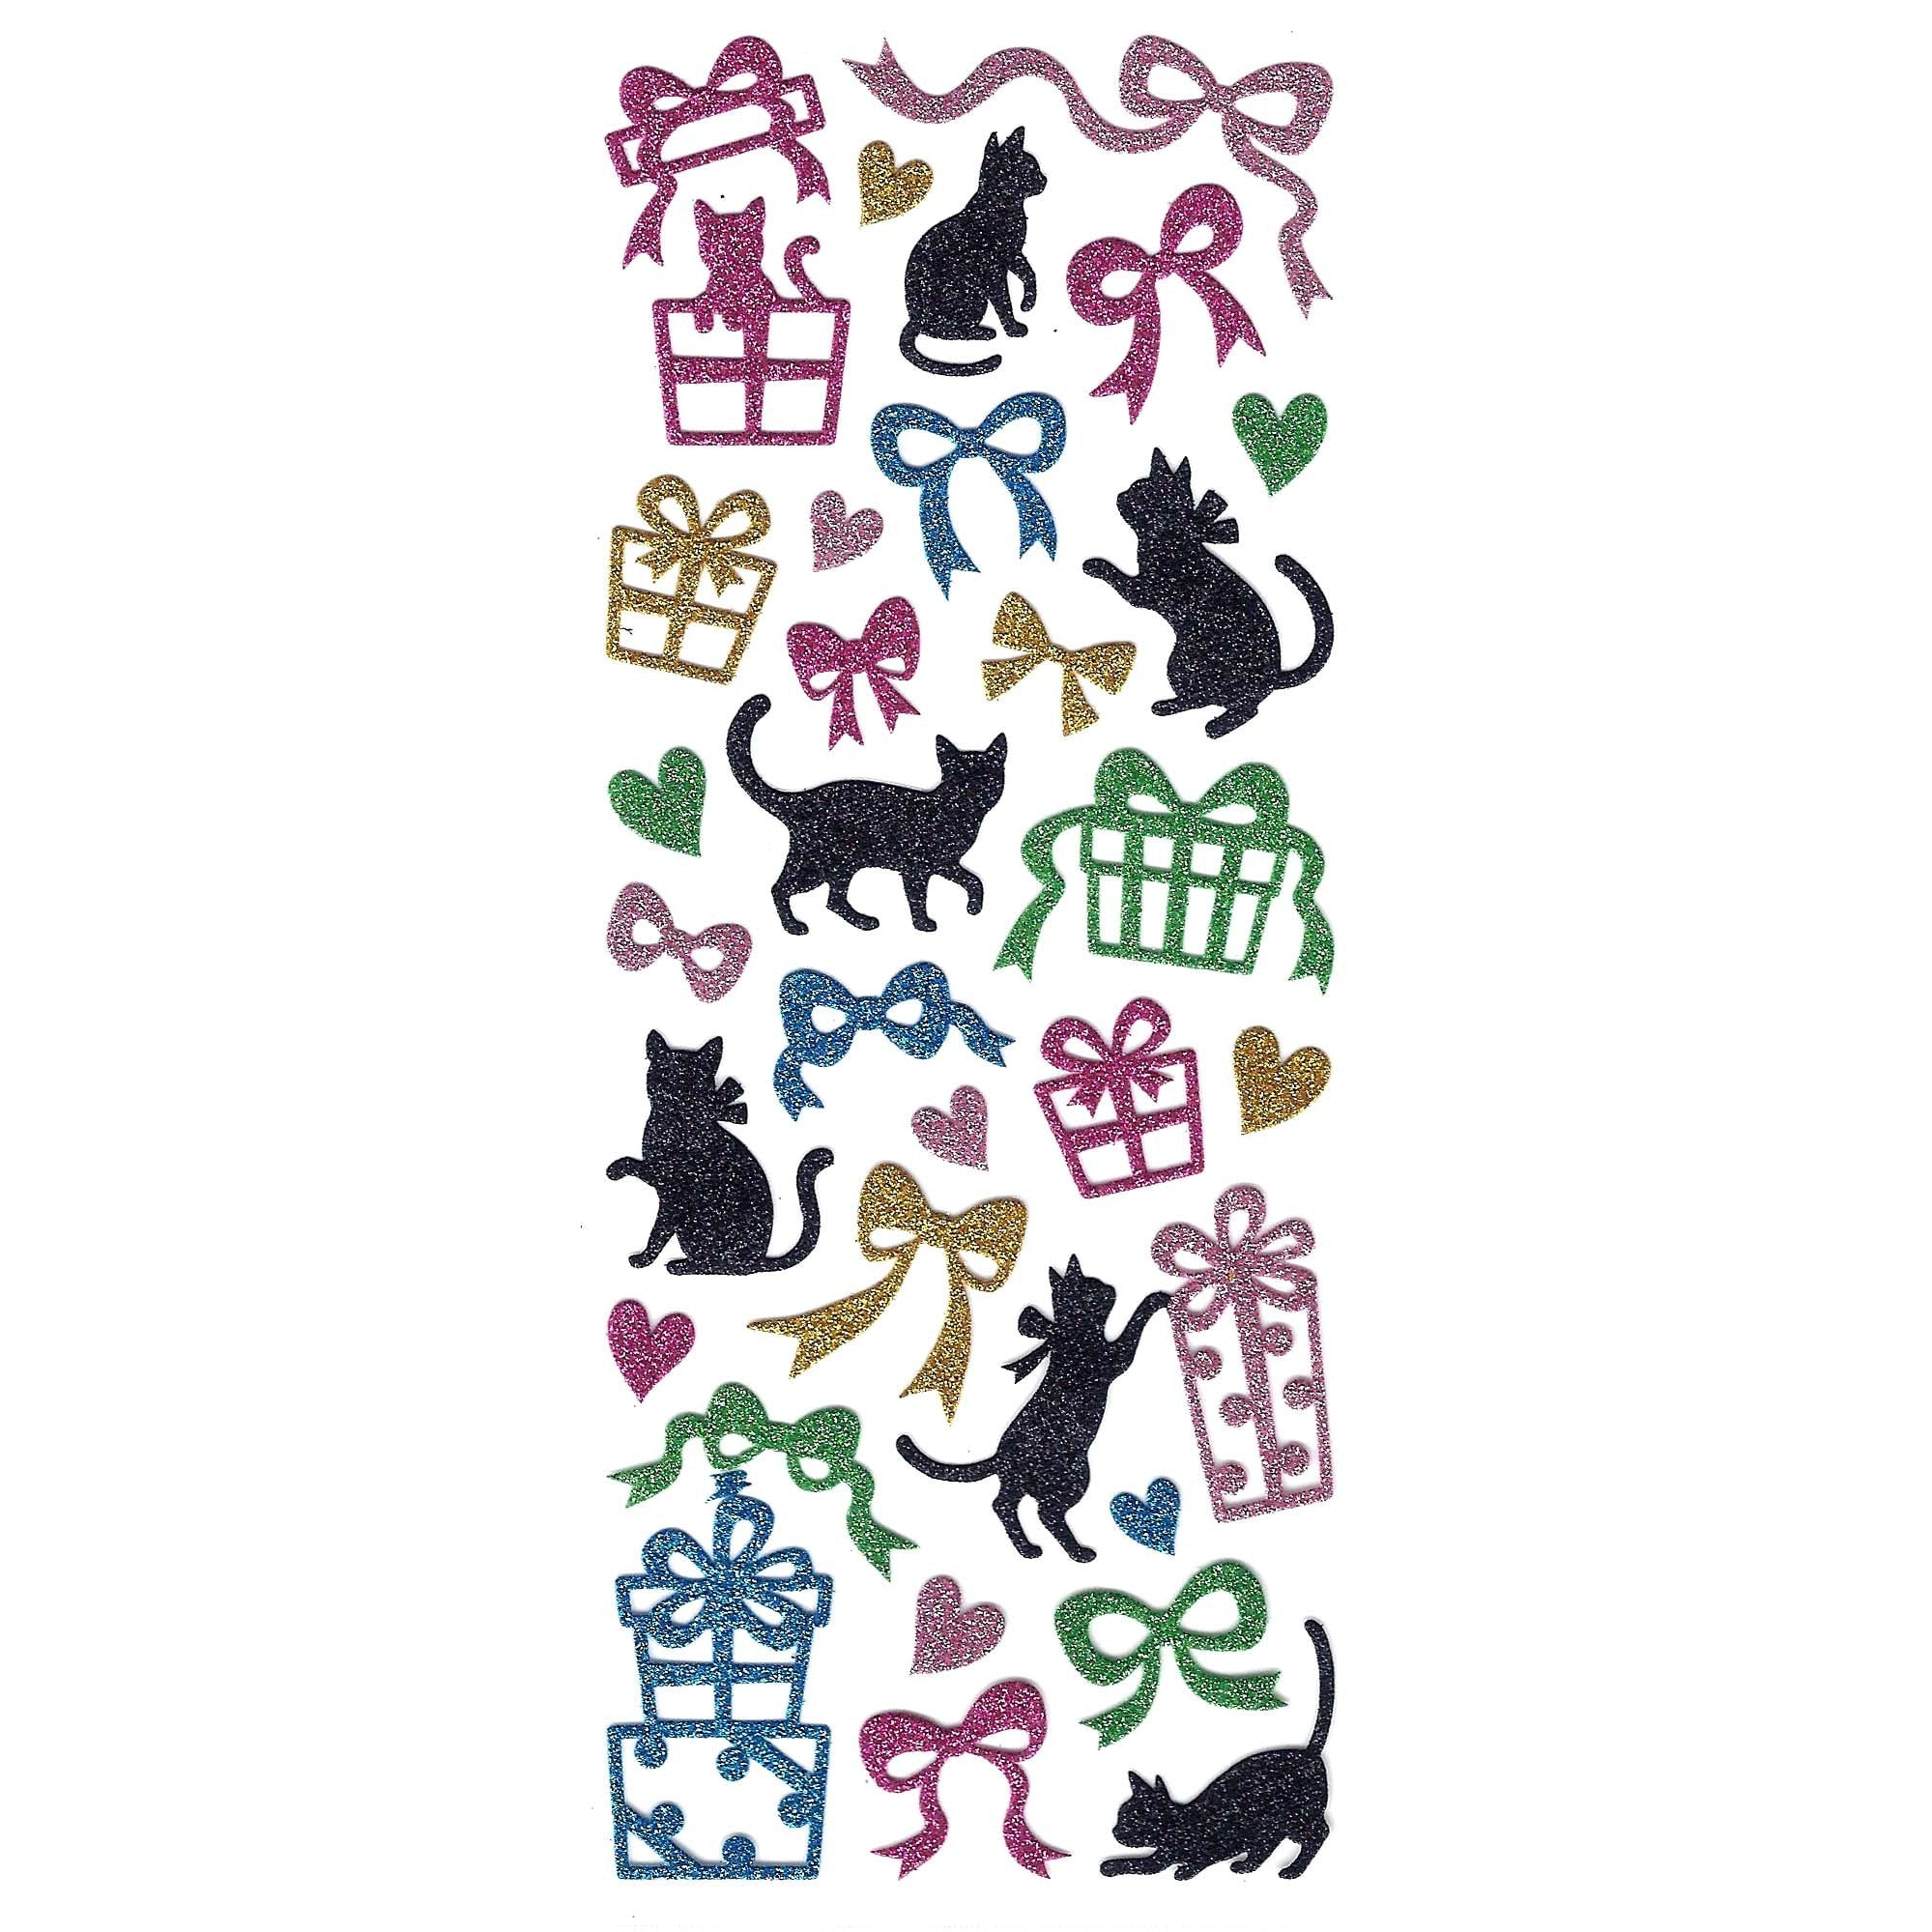 Kitty Cat and Ribbon Silhouette Animal Glittery Decorative Stickers